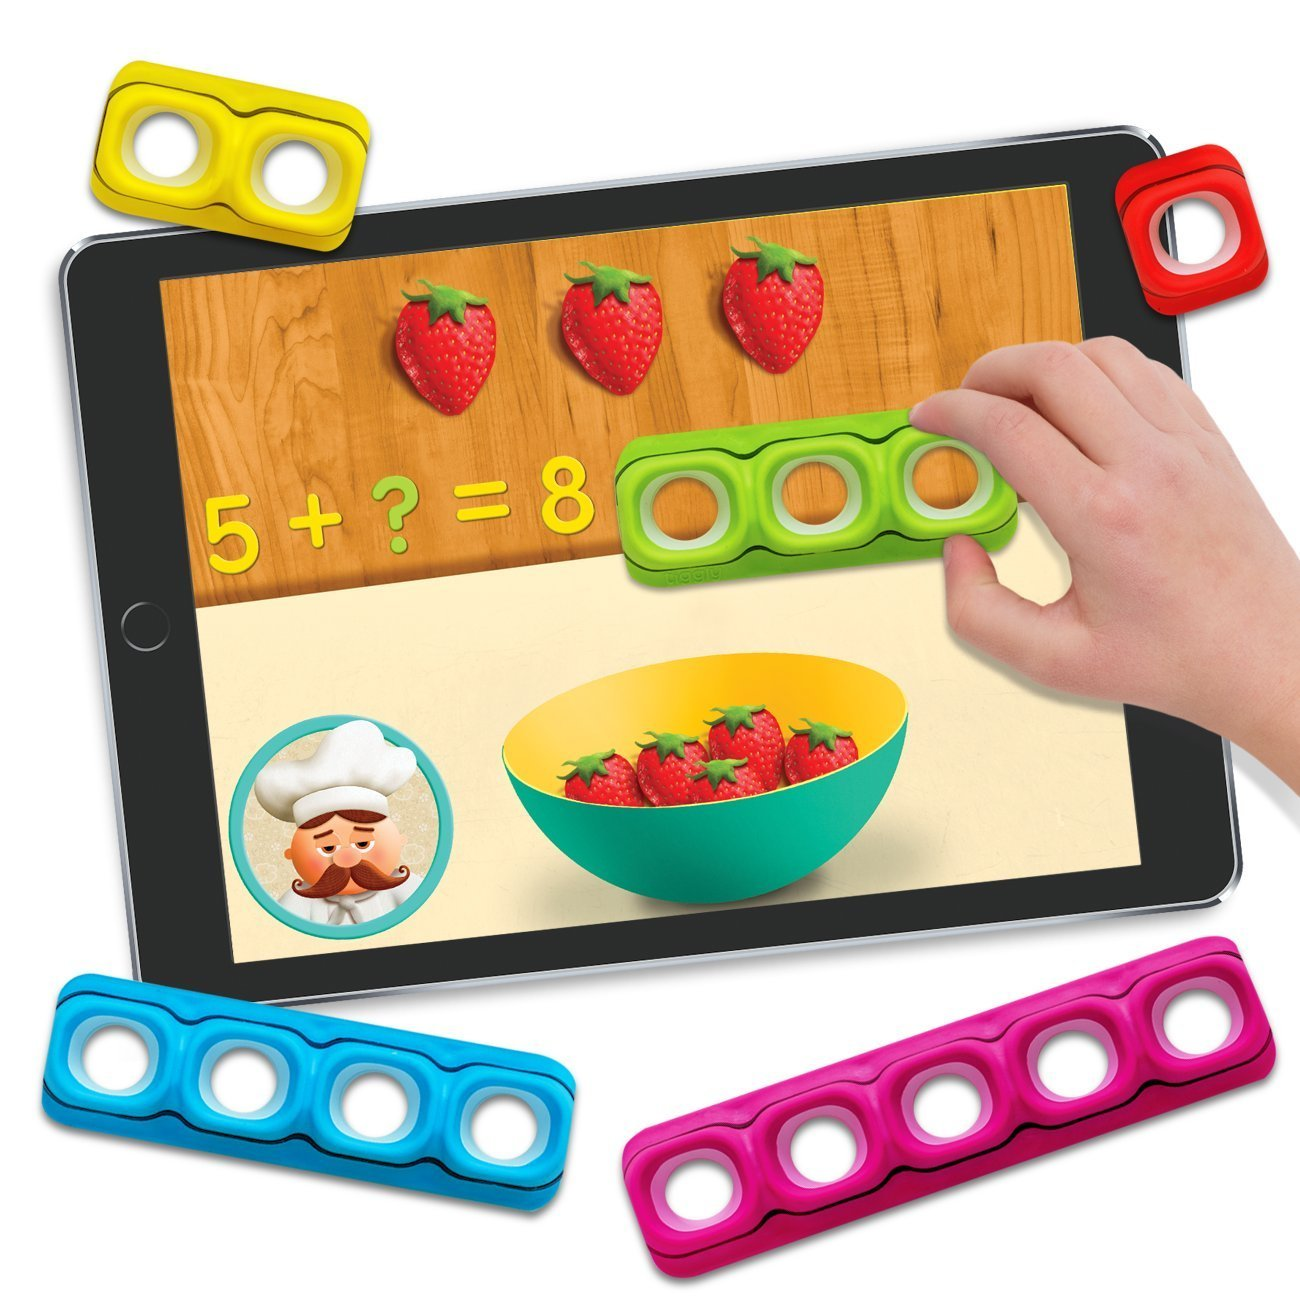 Tiggly Math Learning System for Kids 3-7 - Walmart.com